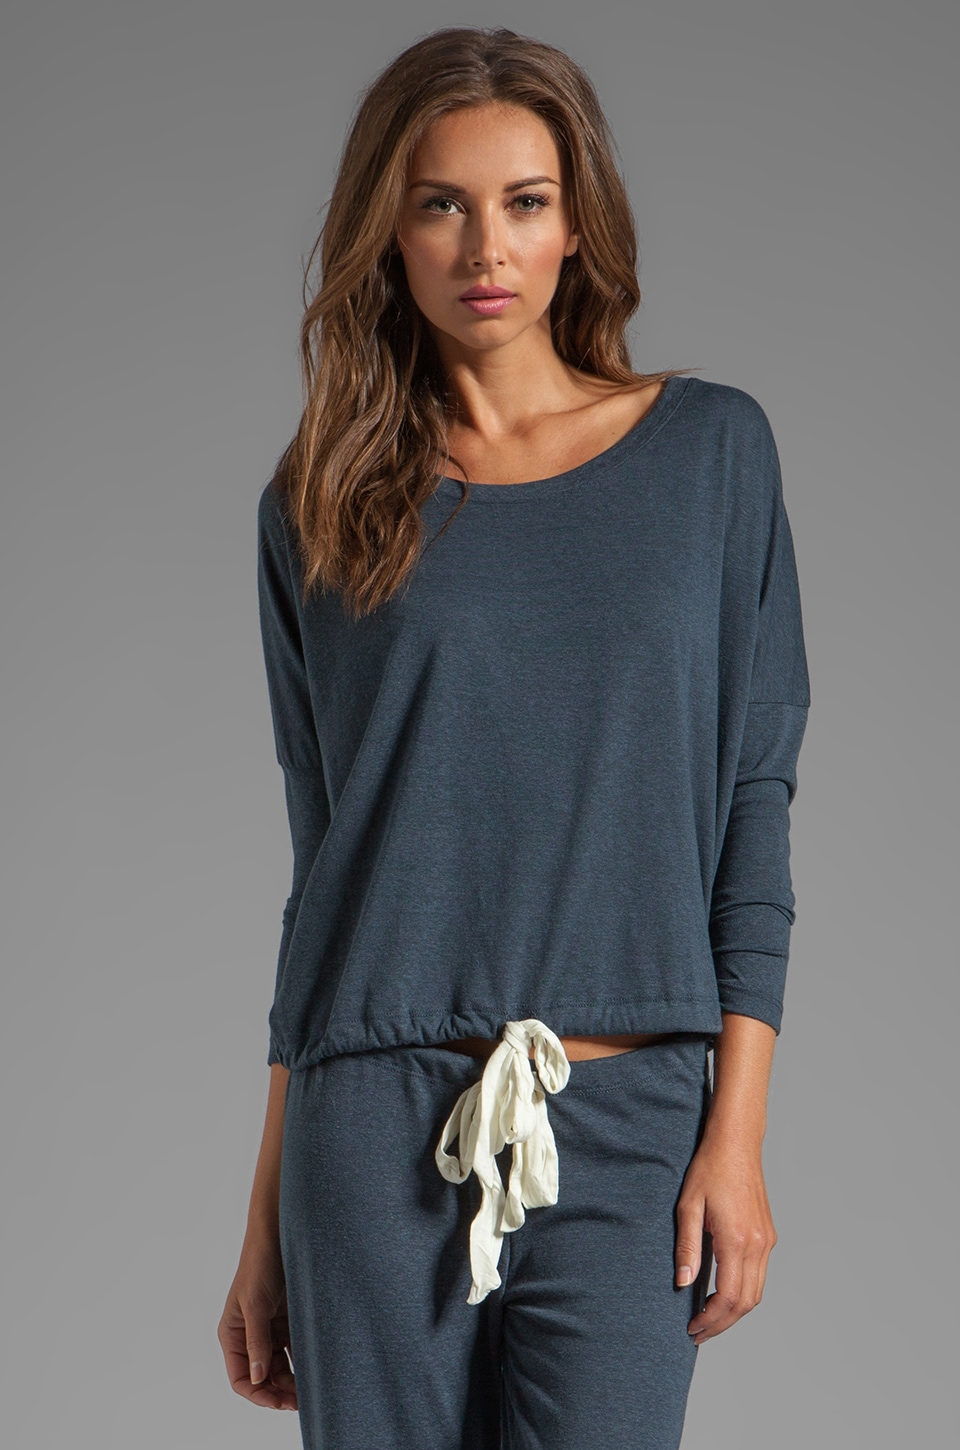 eberjey Heather Slouchy Tee in Coal Heather